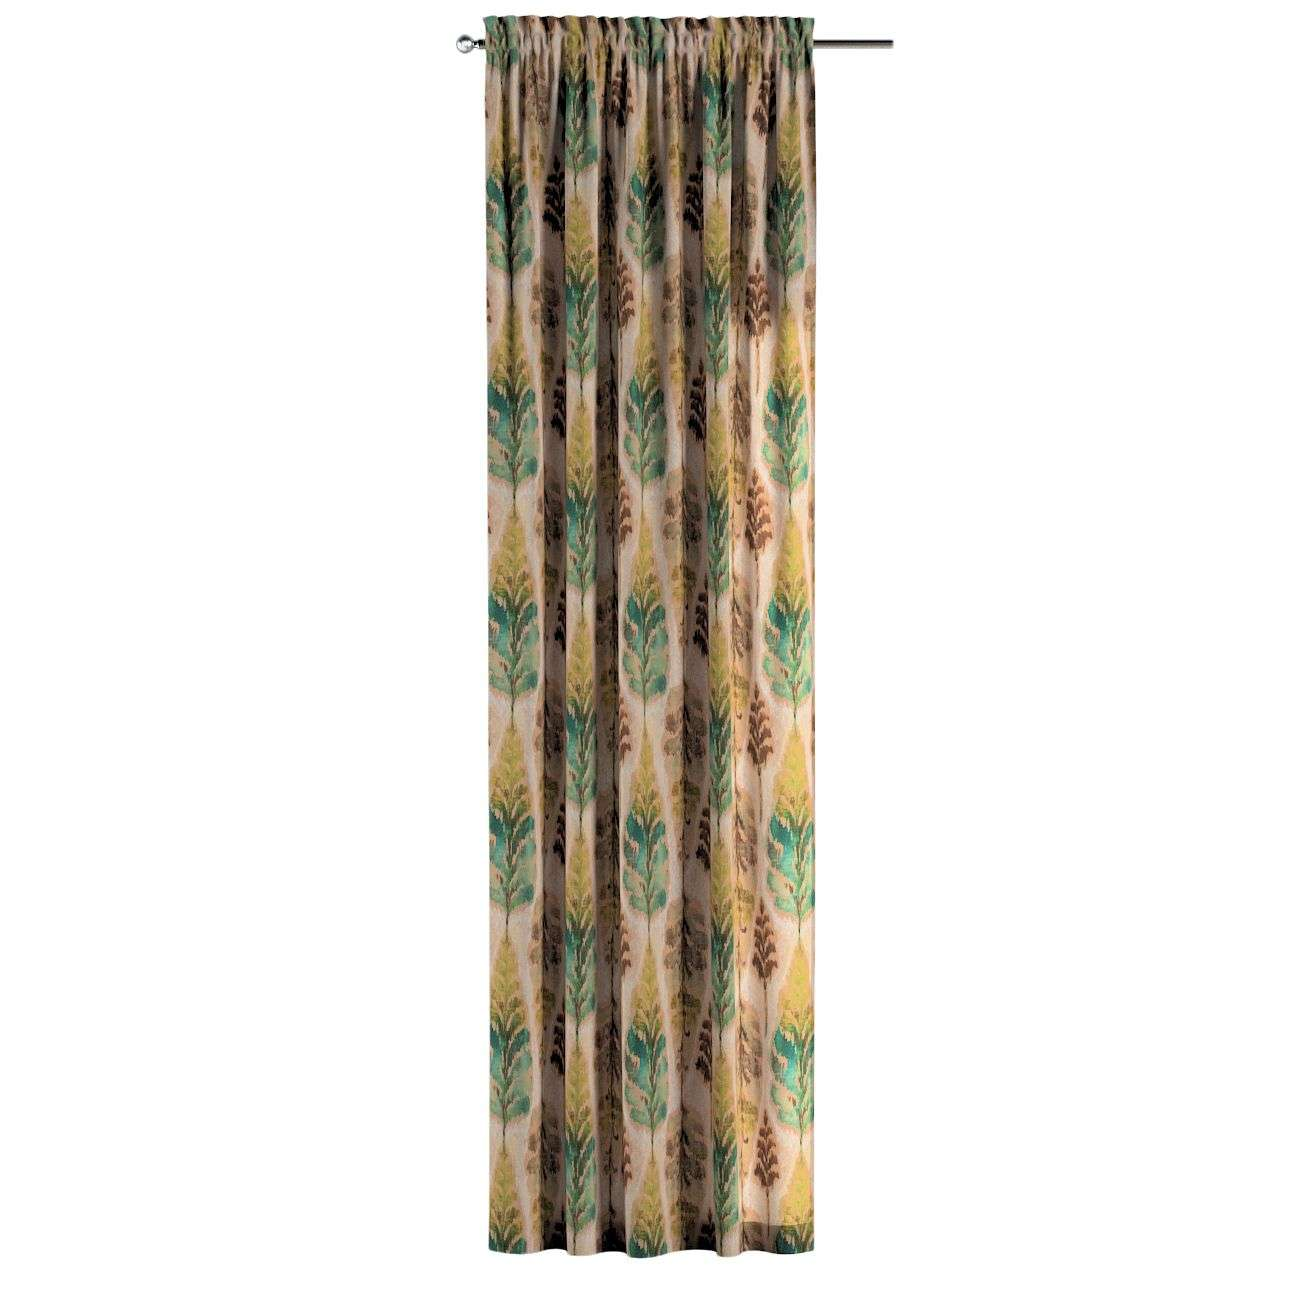 Slot and frill curtains in collection Urban Jungle, fabric: 141-60